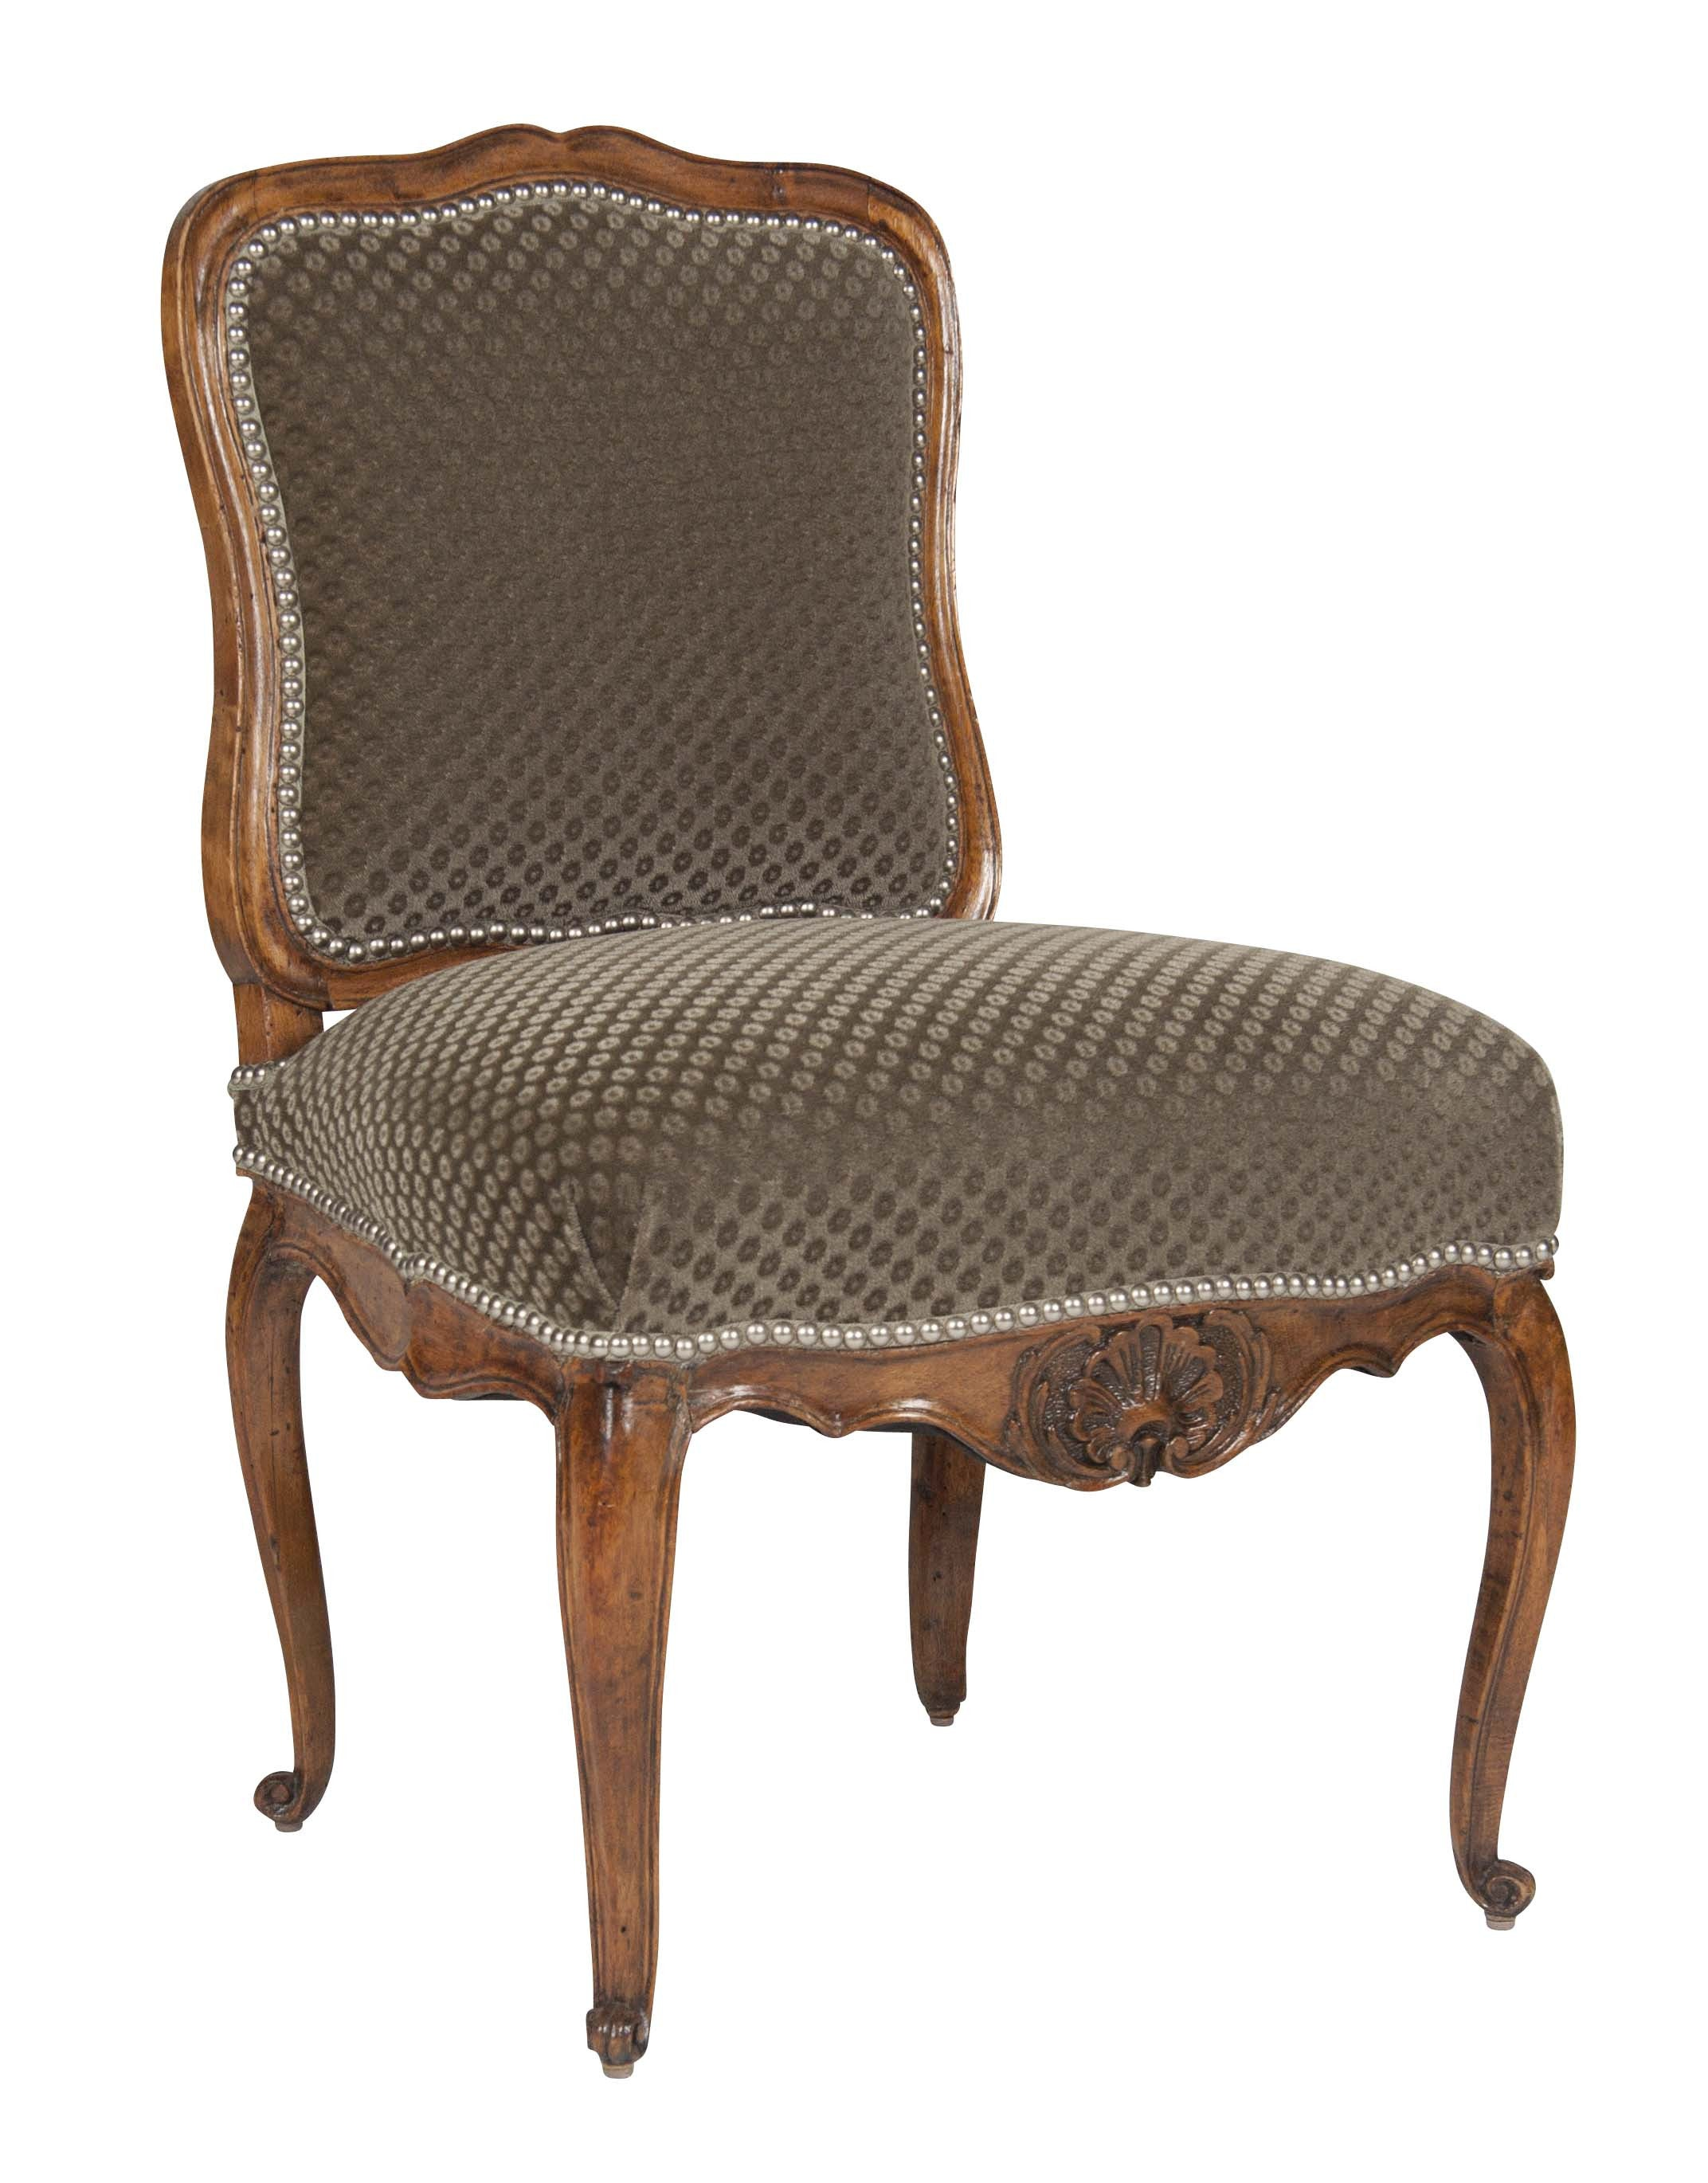 Ordinaire A French Louis XV Chair